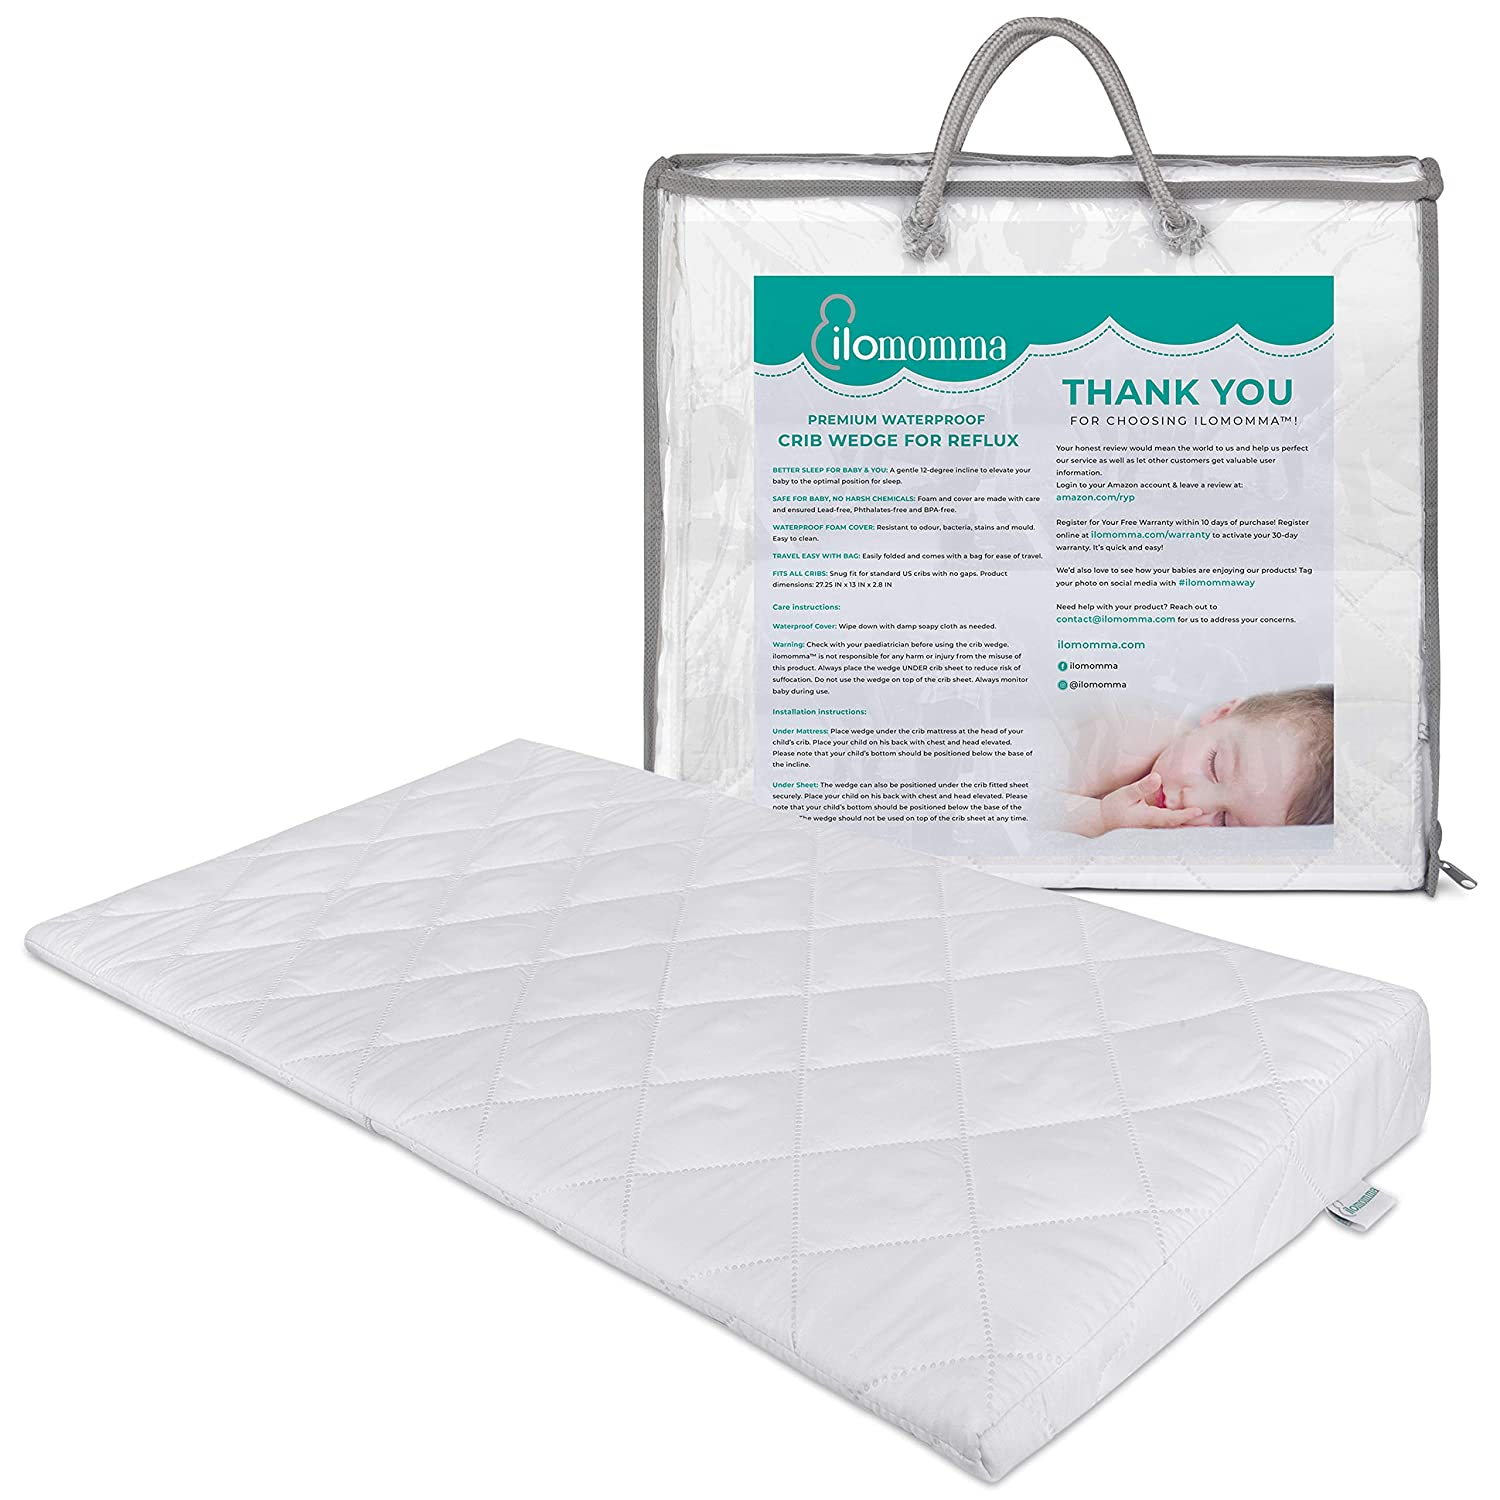 Crib Foam Wedge Pillow For Baby Acid Reflux & Gas Relief   12 Degree Elevation Pillow   Travel Wedge Pillow With Carry Bag   Waterproof Wedge Pillow Case Cover   Infant Congestion Sleep Solution